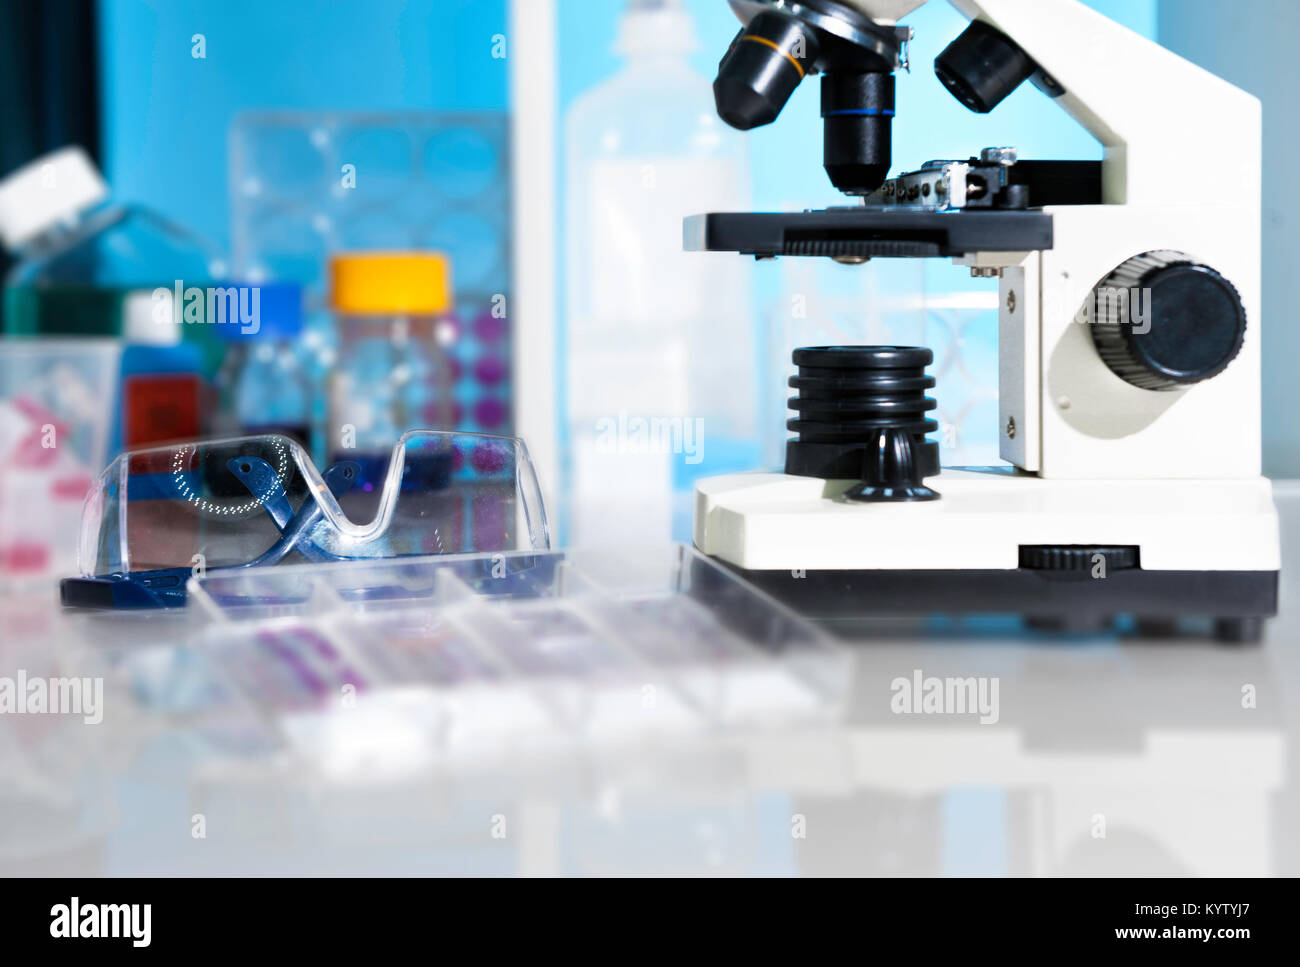 Entry level microscope and plastic safety glasses in scientific lab - Stock Image